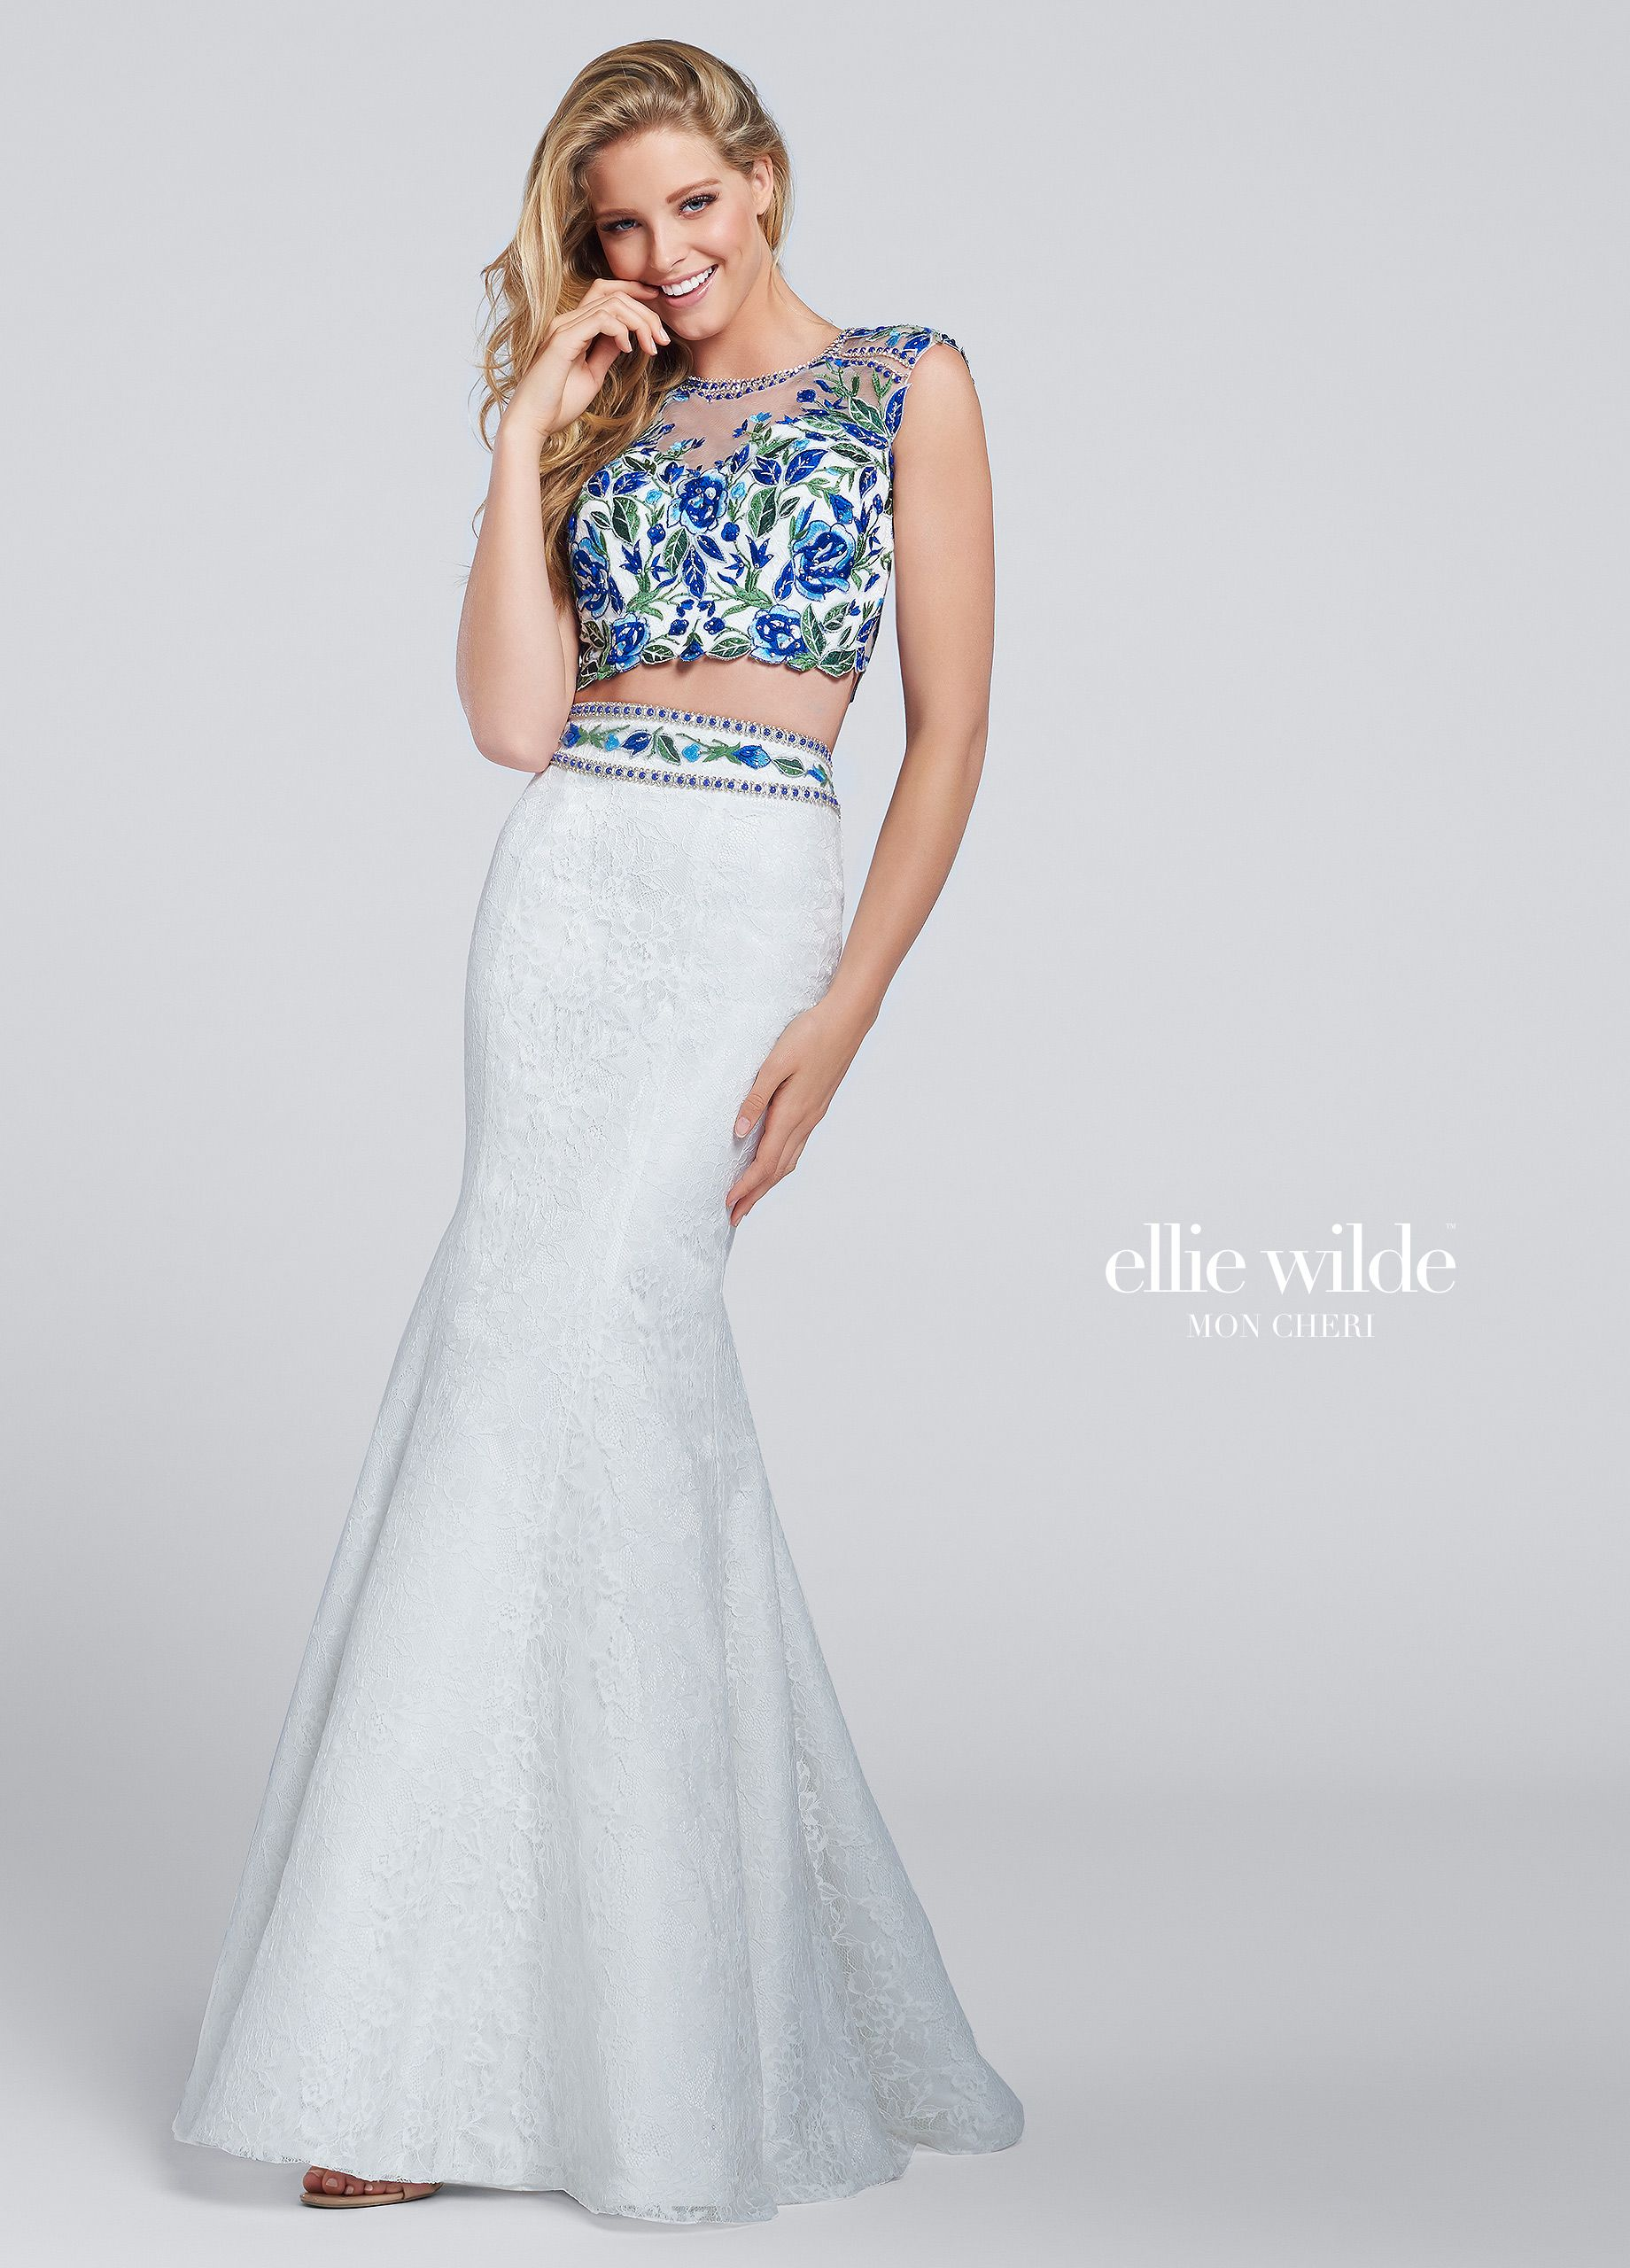 Two-piece Floral Lace Mermaid Prom Dress - EW117030 | Mermaid skirt ...